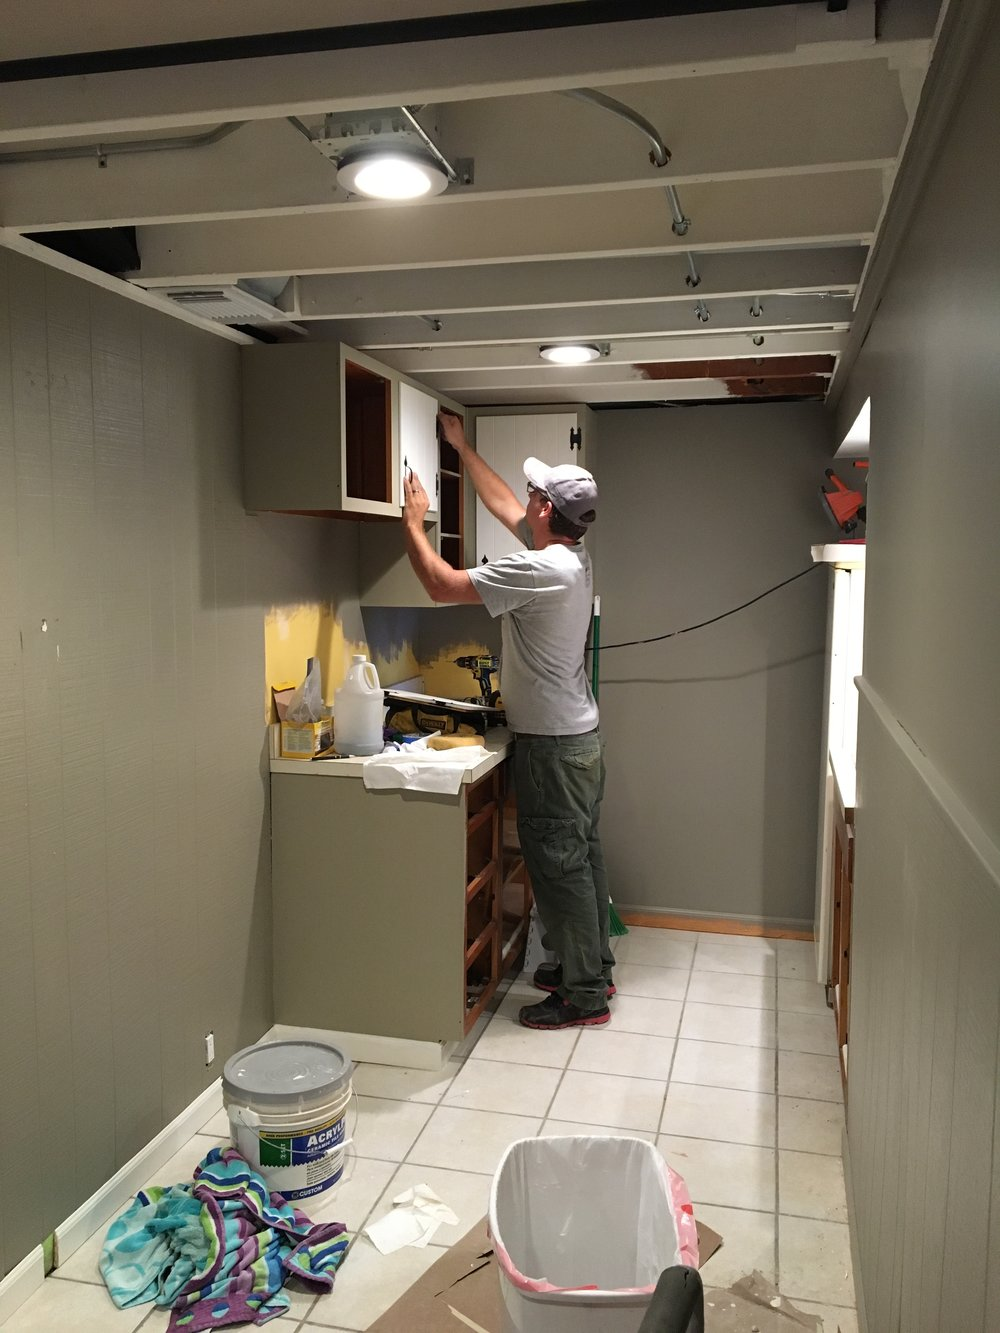 Middle of kitchen renovation. Freshly painted cabinets being installed. All cabinet hardware was cleaned and spray painted for a fresh look.